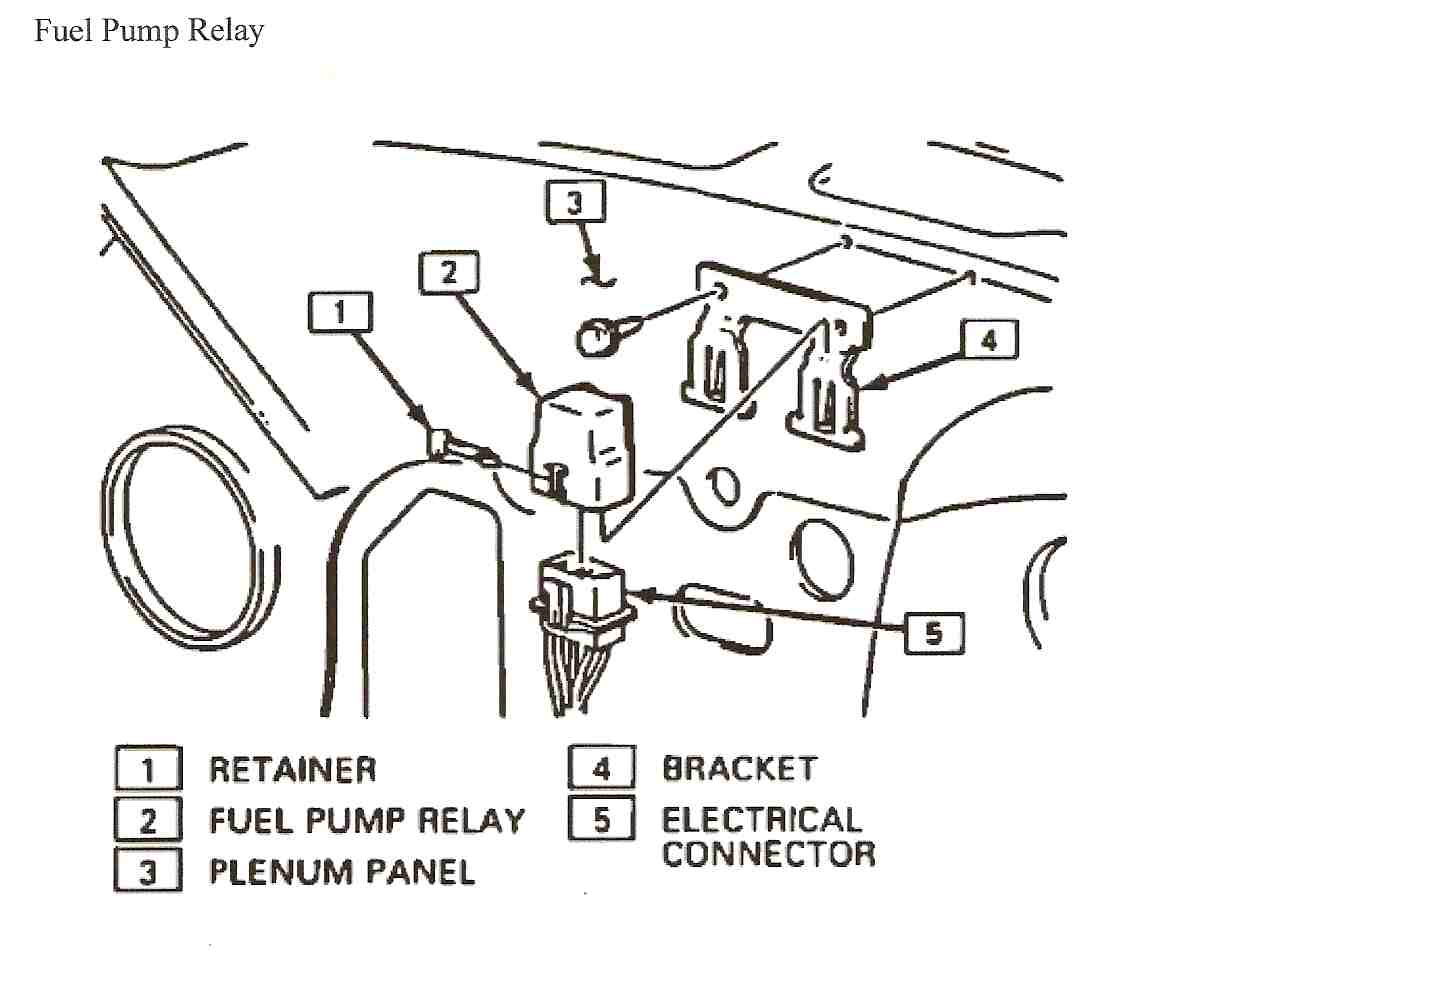 where is the fuel pump relay located on a 1987 chevy